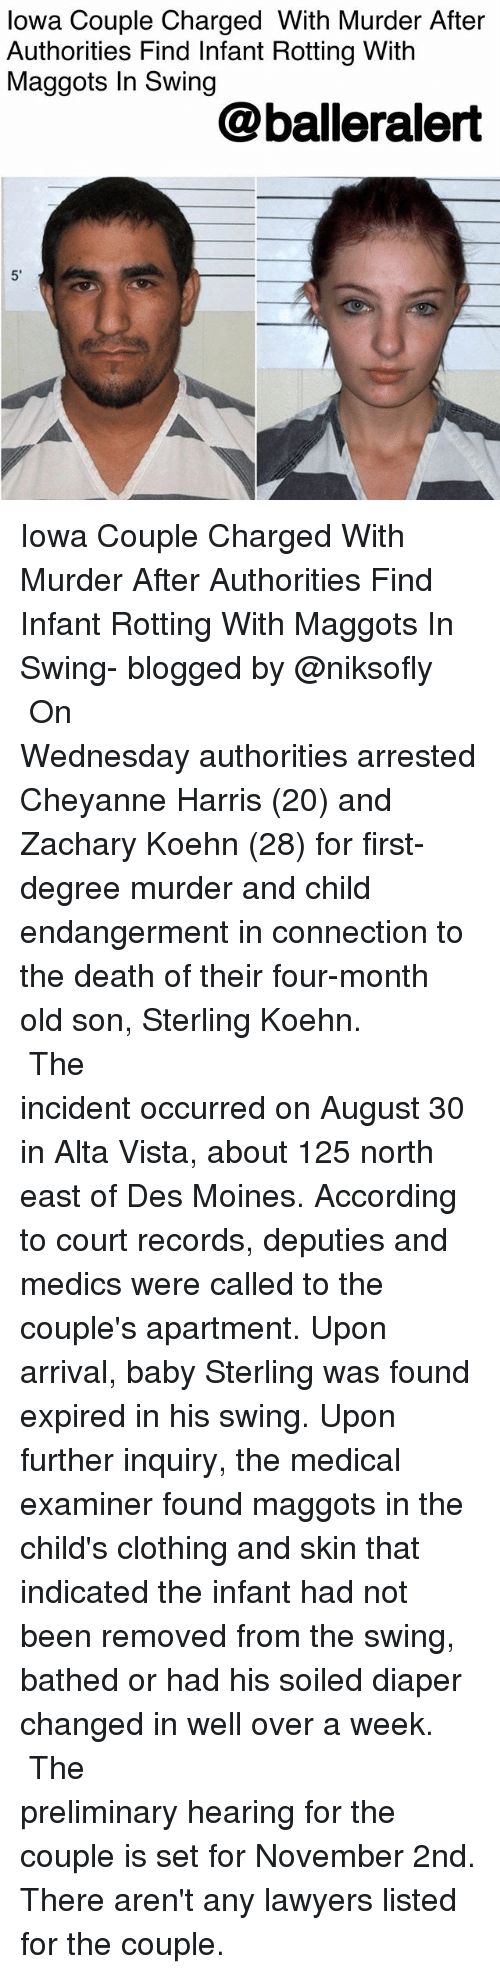 Memes, Death, and Iowa: lowa Couple Charged With Murder After  Authorities Find Infant Rotting With  Maggots In Swing  @balleralert  5' Iowa Couple Charged With Murder After Authorities Find Infant Rotting With Maggots In Swing- blogged by @niksofly ⠀⠀⠀⠀⠀⠀⠀⠀⠀⠀⠀⠀⠀⠀⠀⠀⠀⠀⠀⠀⠀⠀⠀⠀⠀⠀⠀⠀⠀⠀⠀⠀⠀ On Wednesday authorities arrested Cheyanne Harris (20) and Zachary Koehn (28) for first-degree murder and child endangerment in connection to the death of their four-month old son, Sterling Koehn. ⠀⠀⠀⠀⠀⠀⠀⠀⠀⠀⠀⠀⠀⠀⠀⠀⠀⠀⠀⠀⠀⠀⠀⠀⠀⠀⠀⠀⠀⠀⠀⠀⠀ The incident occurred on August 30 in Alta Vista, about 125 north east of Des Moines. According to court records, deputies and medics were called to the couple's apartment. Upon arrival, baby Sterling was found expired in his swing. Upon further inquiry, the medical examiner found maggots in the child's clothing and skin that indicated the infant had not been removed from the swing, bathed or had his soiled diaper changed in well over a week. ⠀⠀⠀⠀⠀⠀⠀⠀⠀⠀⠀⠀⠀⠀⠀⠀⠀⠀⠀⠀⠀⠀⠀⠀⠀⠀⠀⠀⠀⠀⠀⠀⠀ The preliminary hearing for the couple is set for November 2nd. There aren't any lawyers listed for the couple.